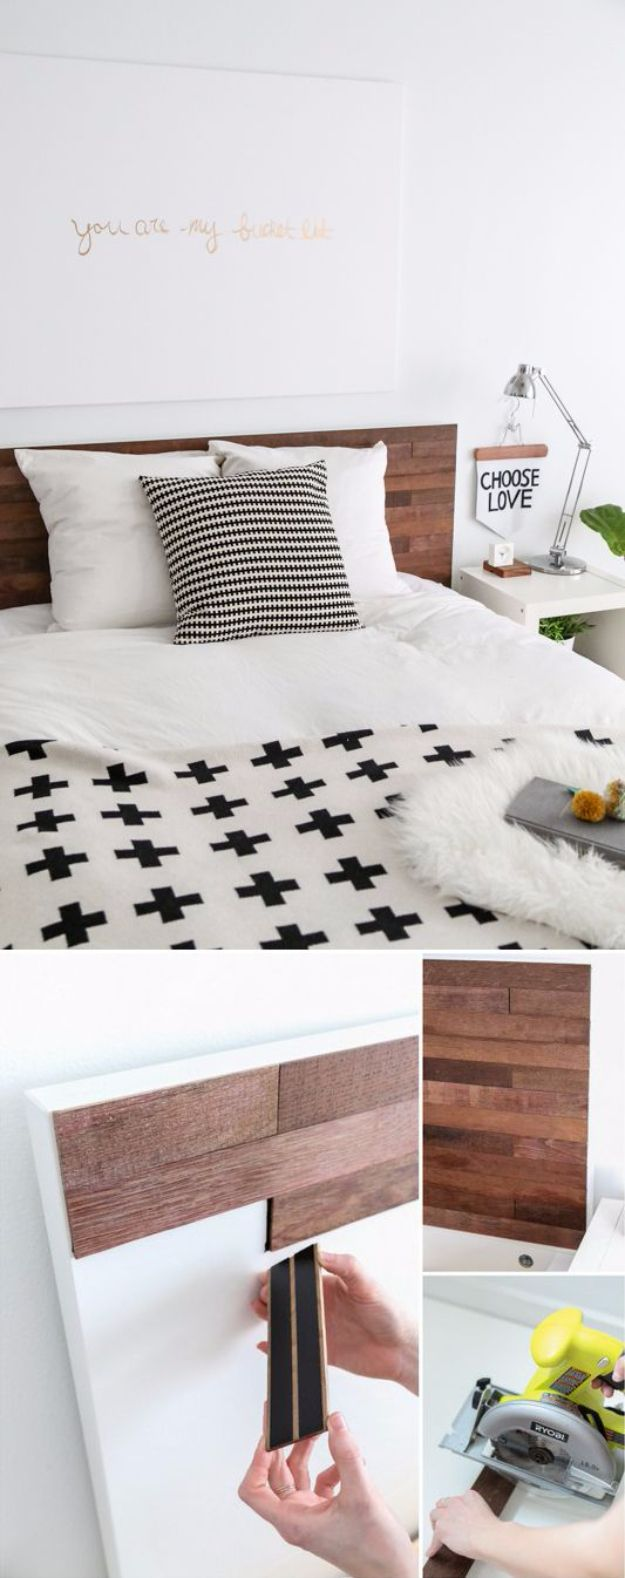 Best IKEA Hacks and DIY Hack Ideas for Furniture Projects and Home Decor from IKEA - IKEA Hack Stikwood Headboard - Creative IKEA Hack Tutorials for DIY Platform Bed, Desk, Vanity, Dresser, Coffee Table, Storage and Kitchen, Bedroom and Bathroom Decor http://diyjoy.com/best-ikea-hacks